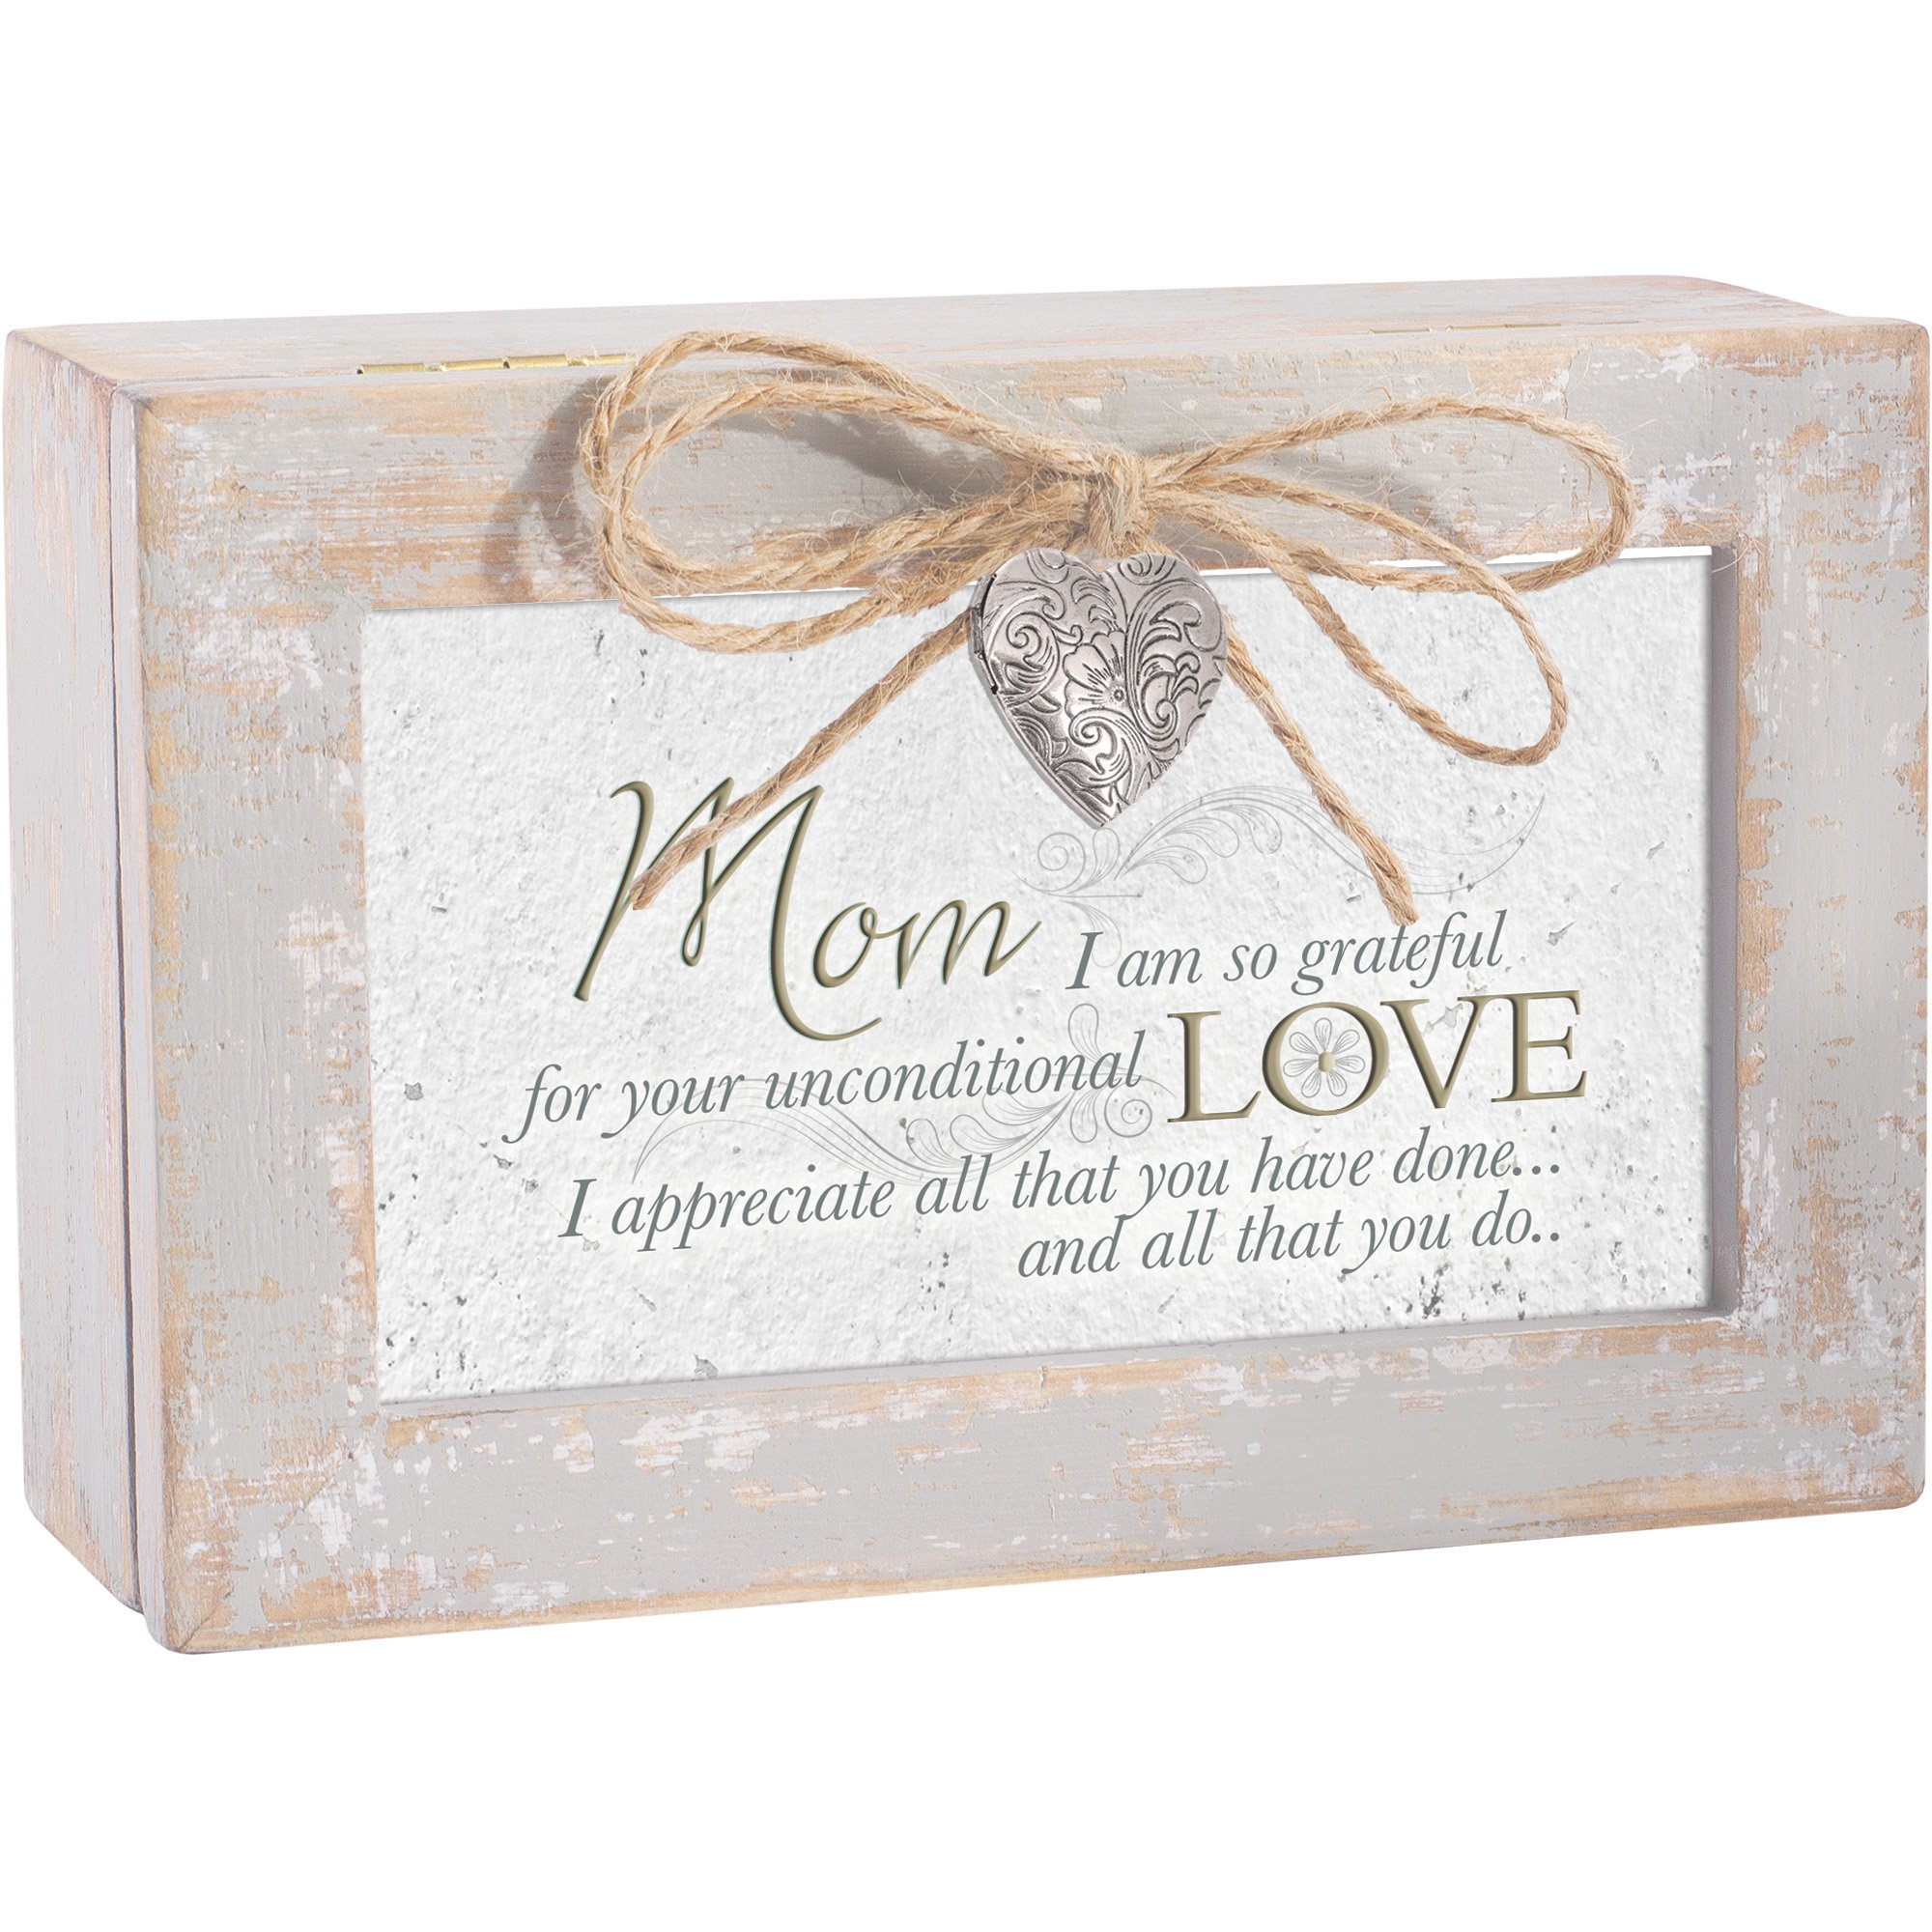 Mom Grateful for Love Distressed Wood Locket Jewelry Music Box Plays Tune Wind Beneath My Wings by Cottage Garden (Image #2)